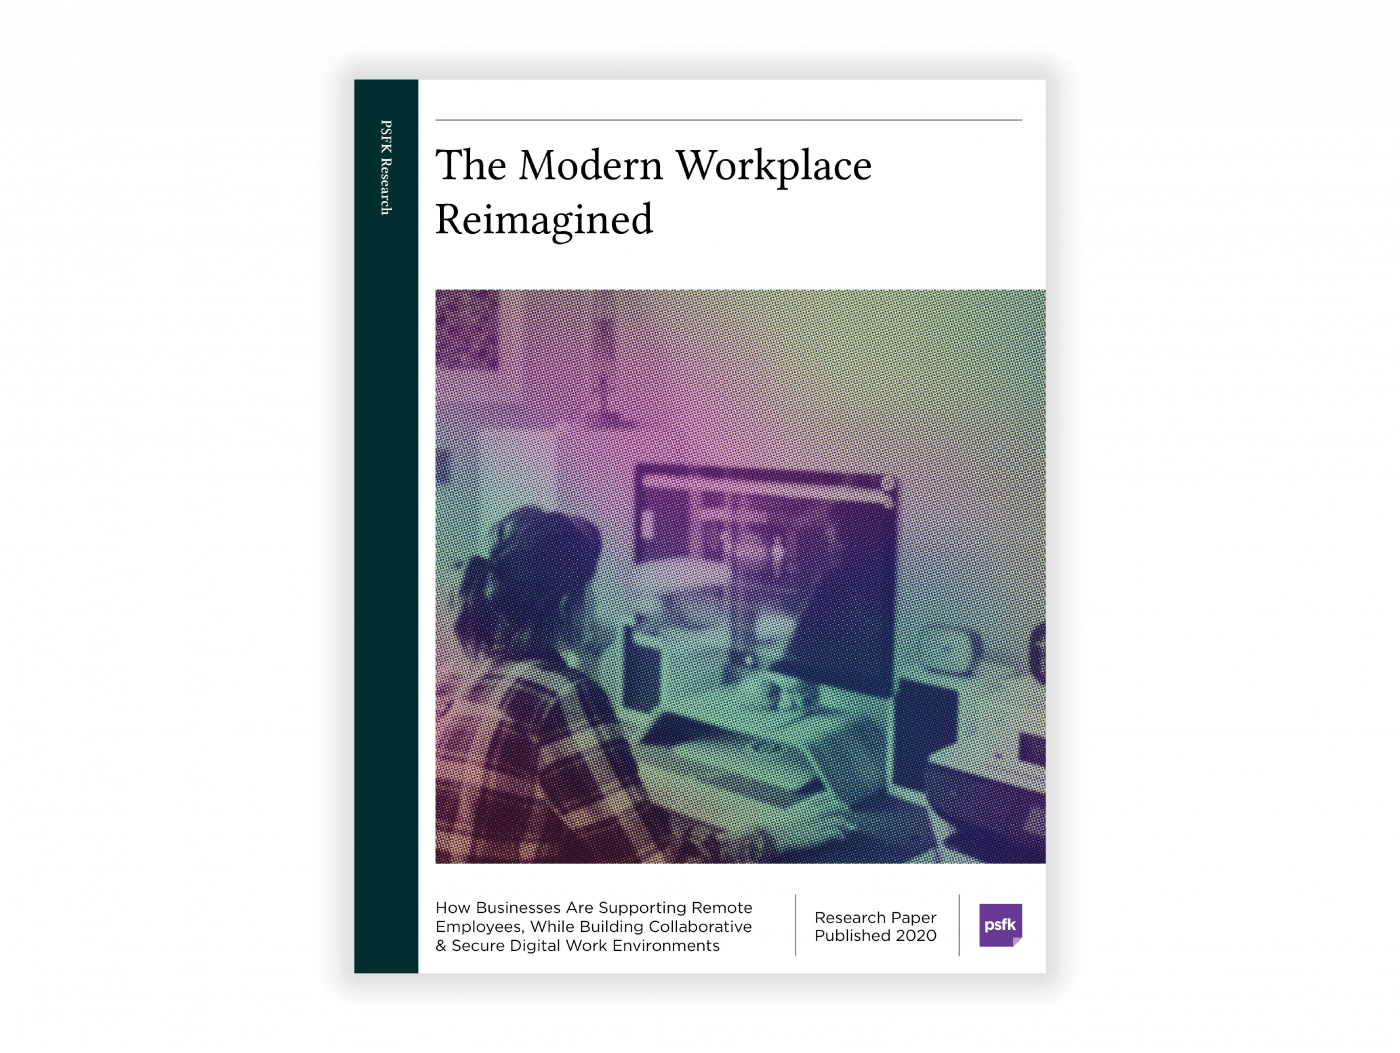 The Modern Workplace Reimagined